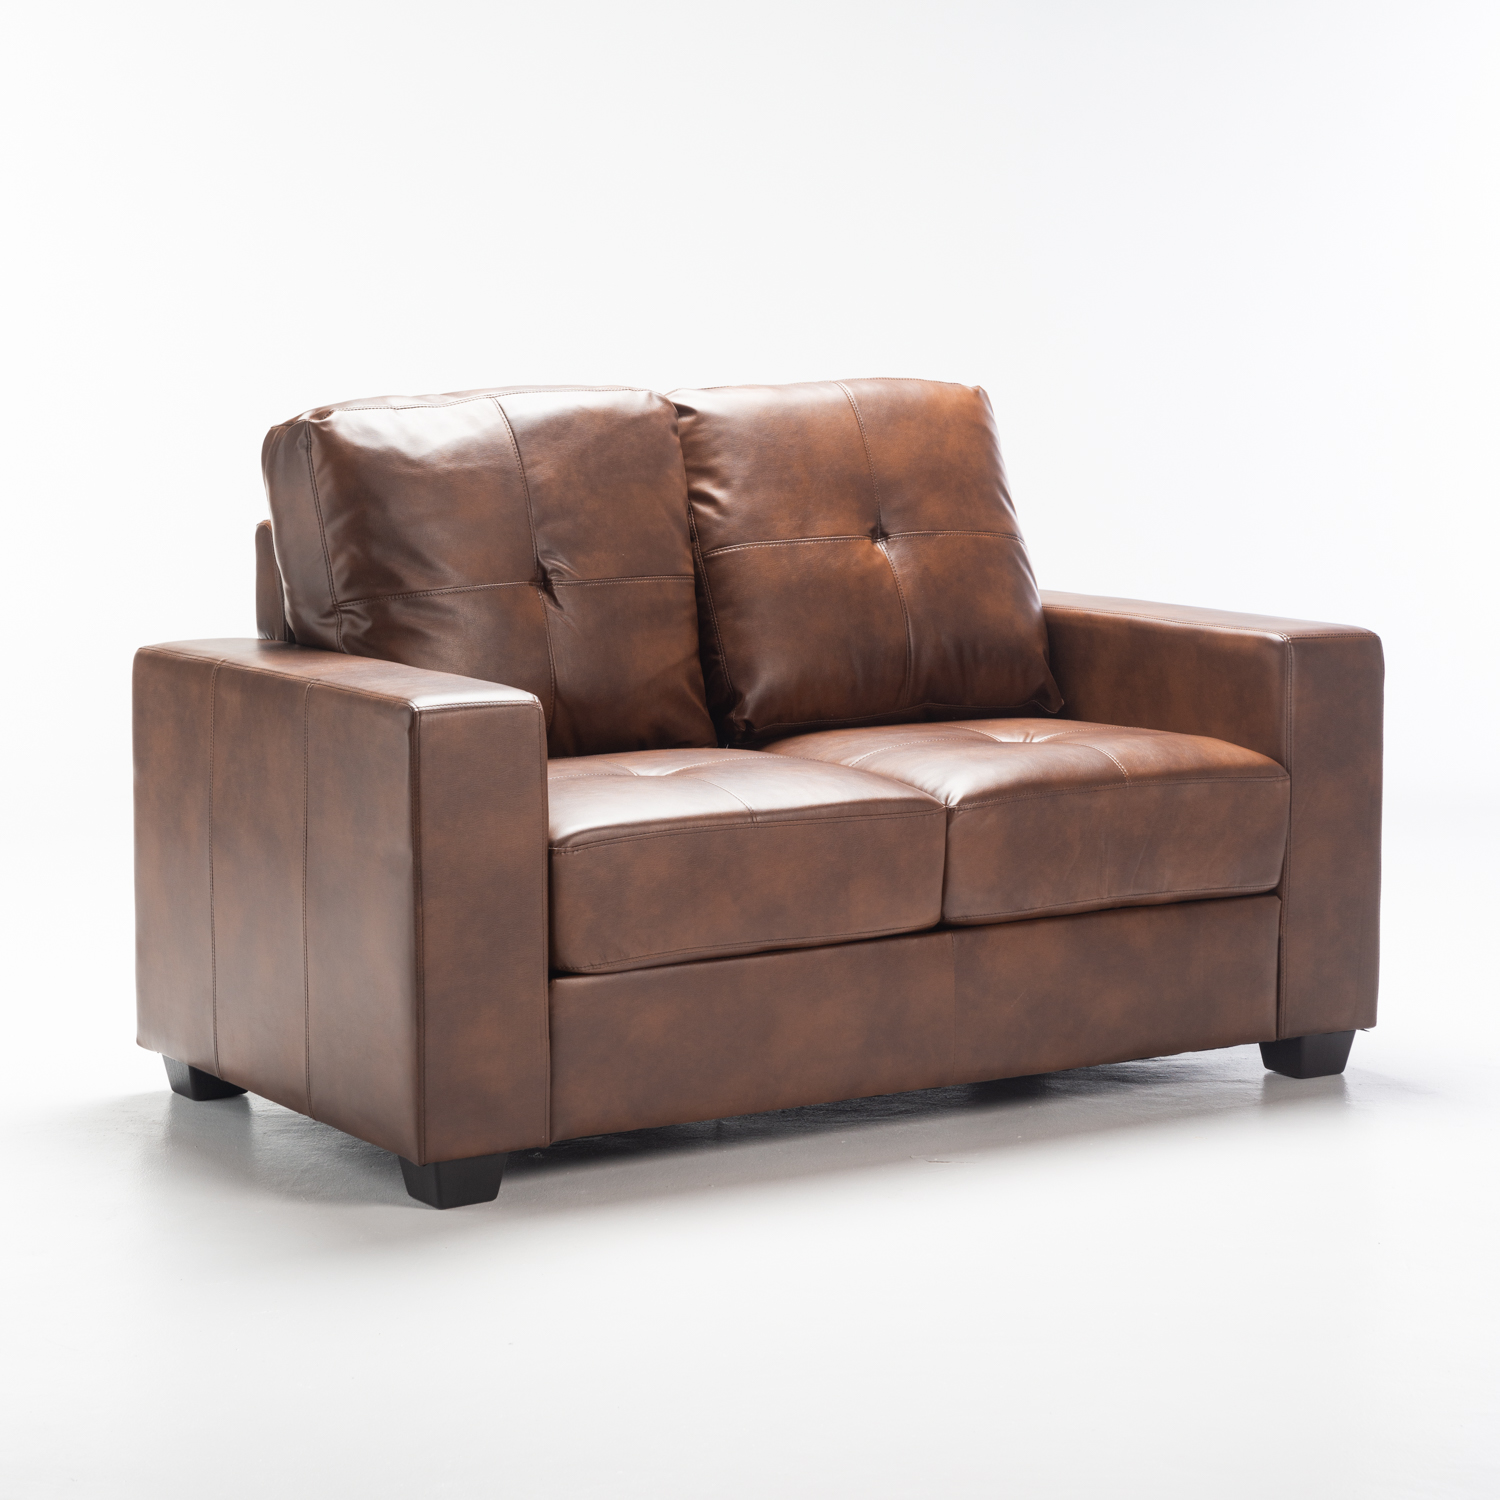 Astra Leather Touch 2 Seater - Walnut